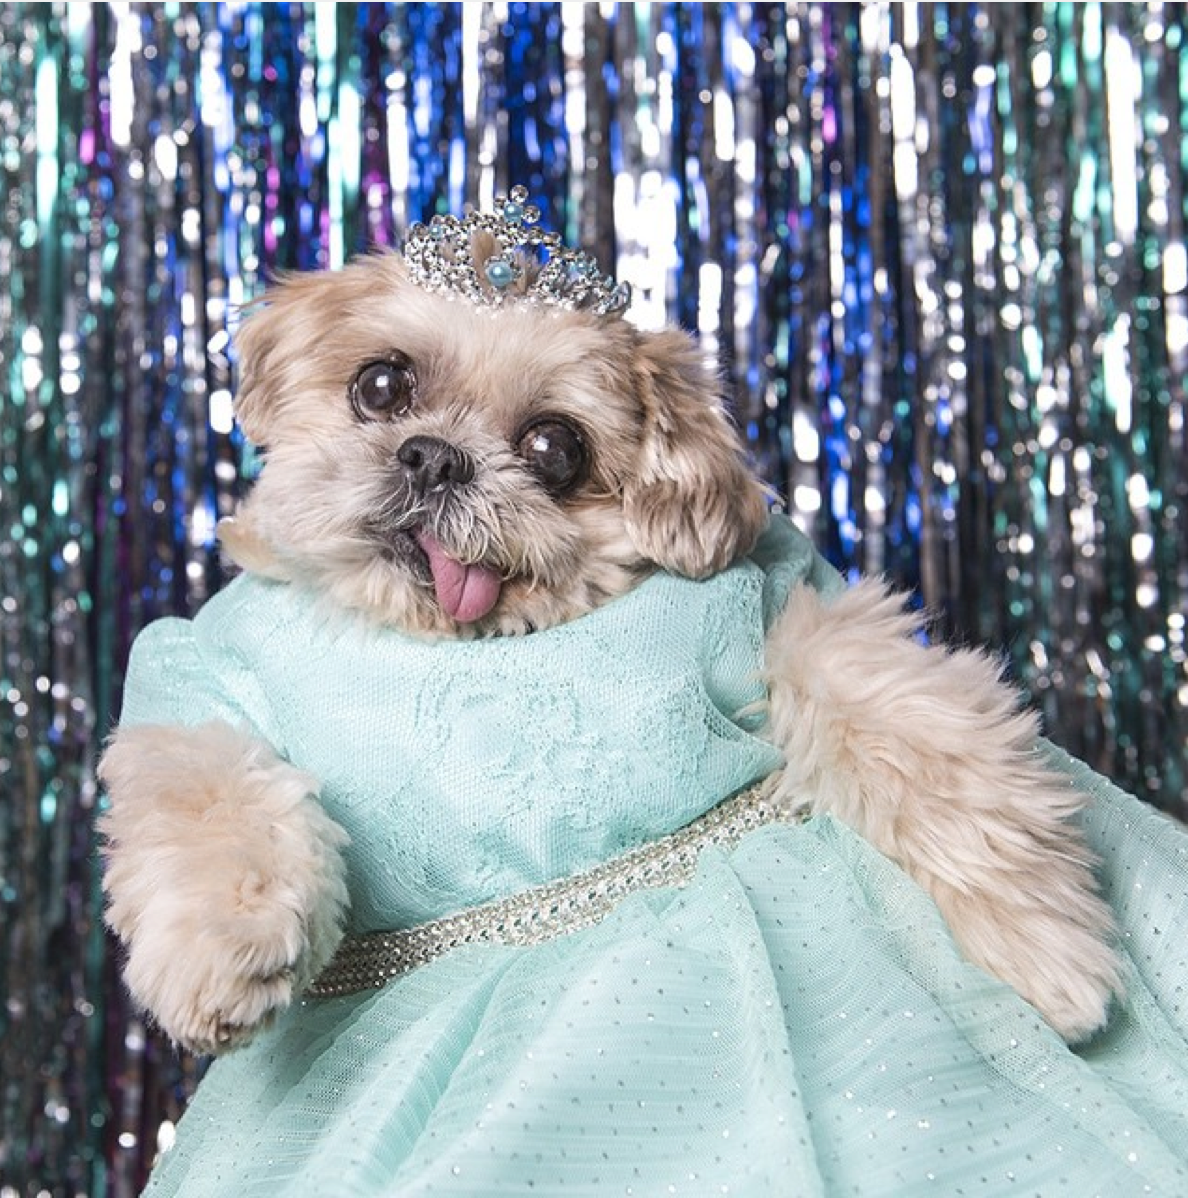 17 Dogs You Should Follow On Instagram